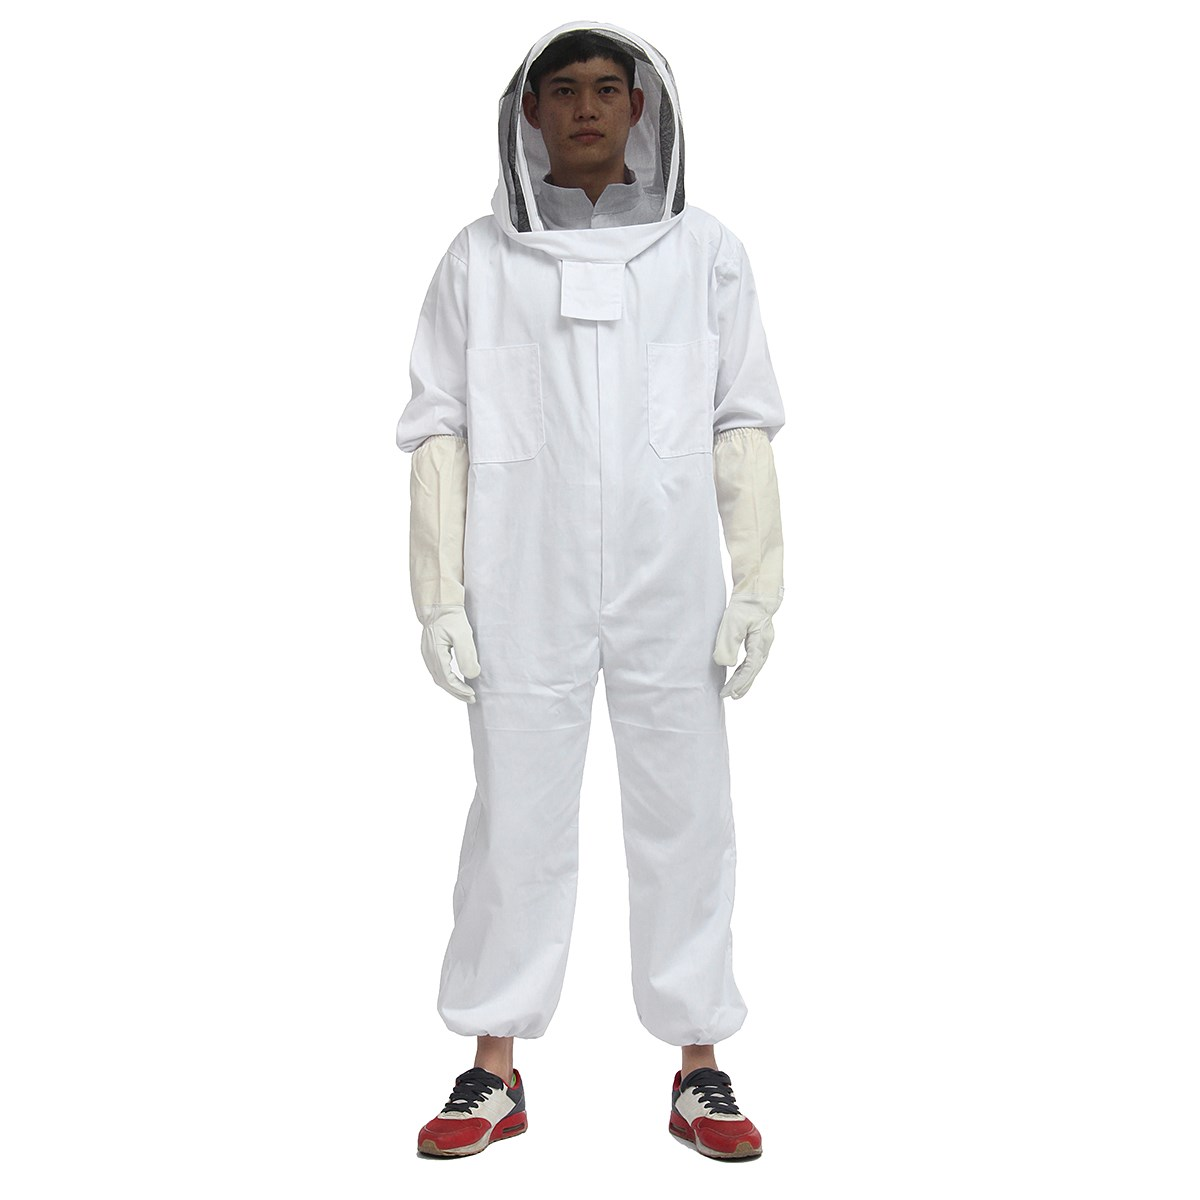 Beekeeper Beekeeping Protective Veil Suit Smock Bee Hat Gloves Full Body Set New Safety Clothing<br>